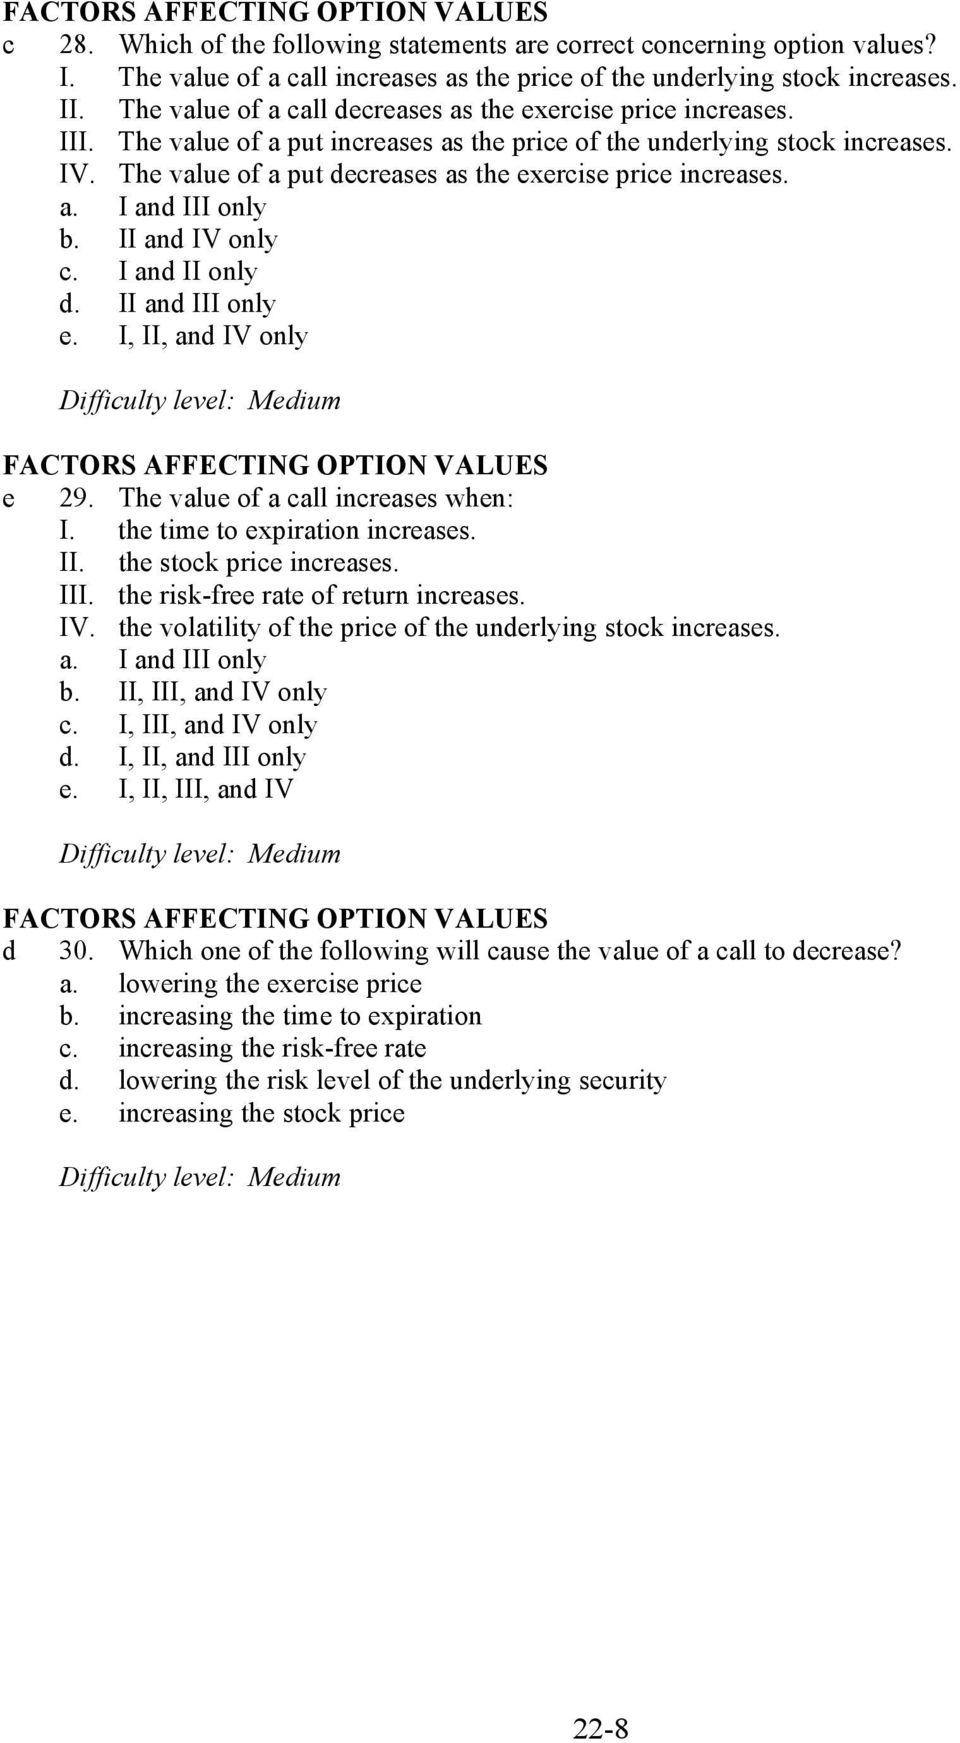 The value of a put decreases as the exercise price increases. a. I and III only b. II and IV only c. I and II only d. II and III only e. I, II, and IV only FACTORS AFFECTING OPTION VALUES e 29.